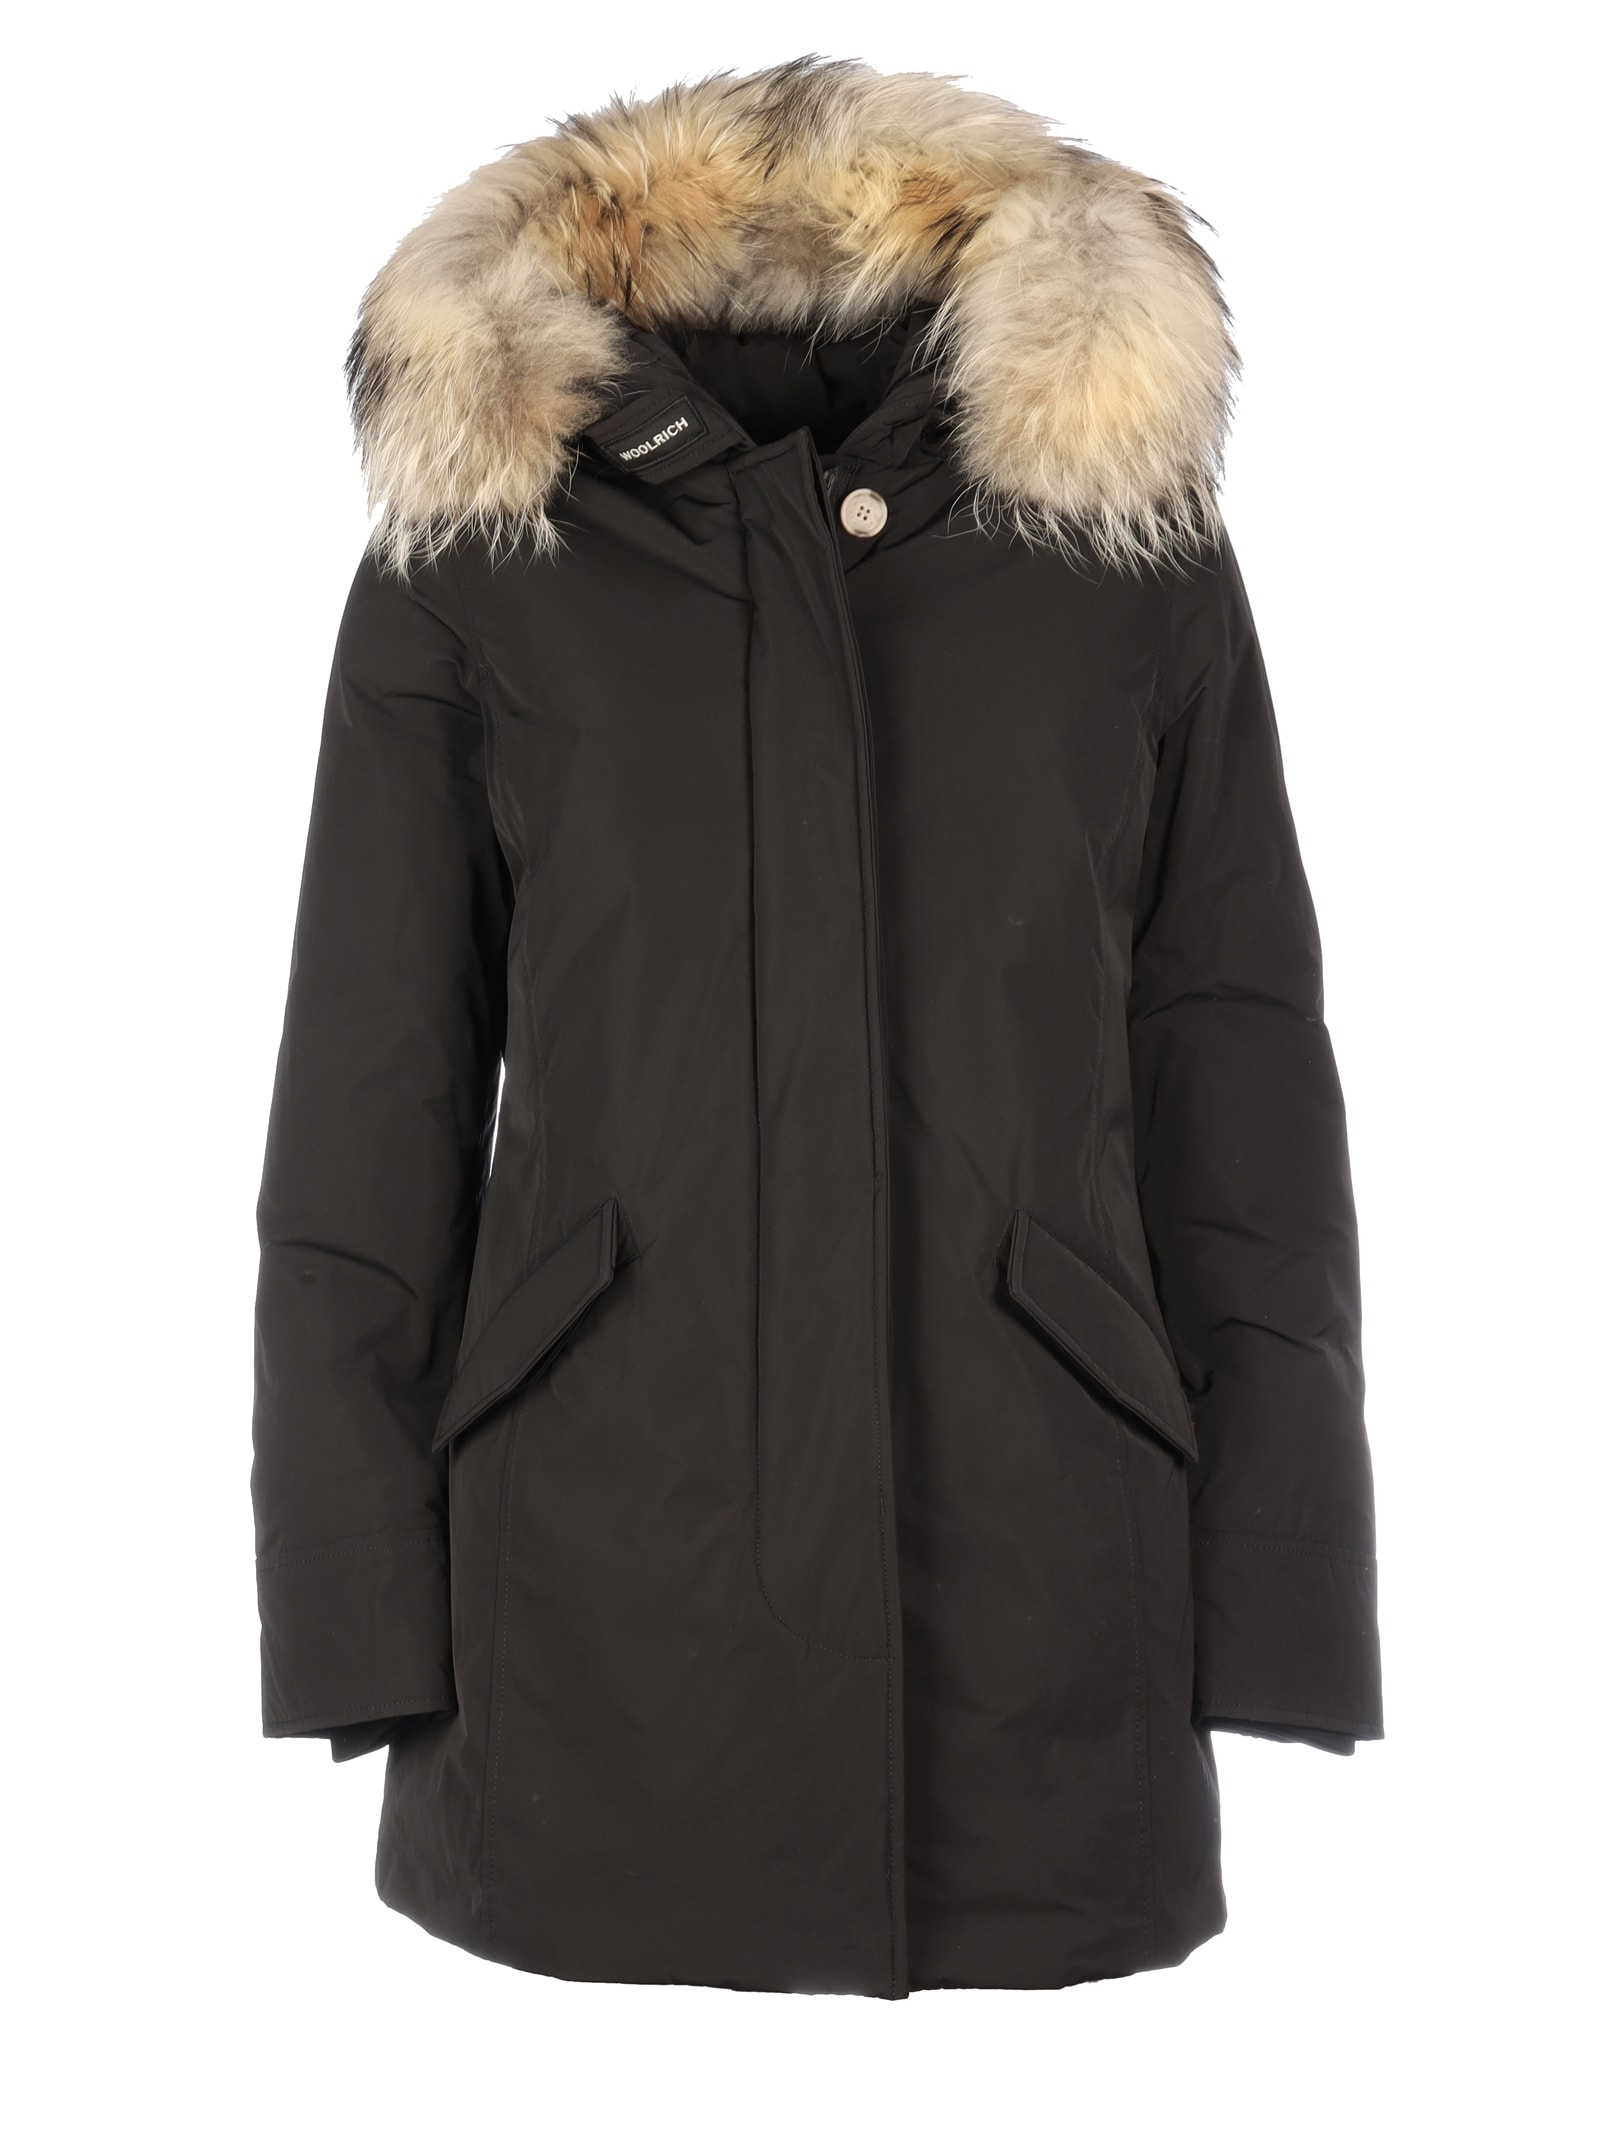 Photo of  Woolrich Luxury Artic Parka Clasico- shop Woolrich jackets online sales